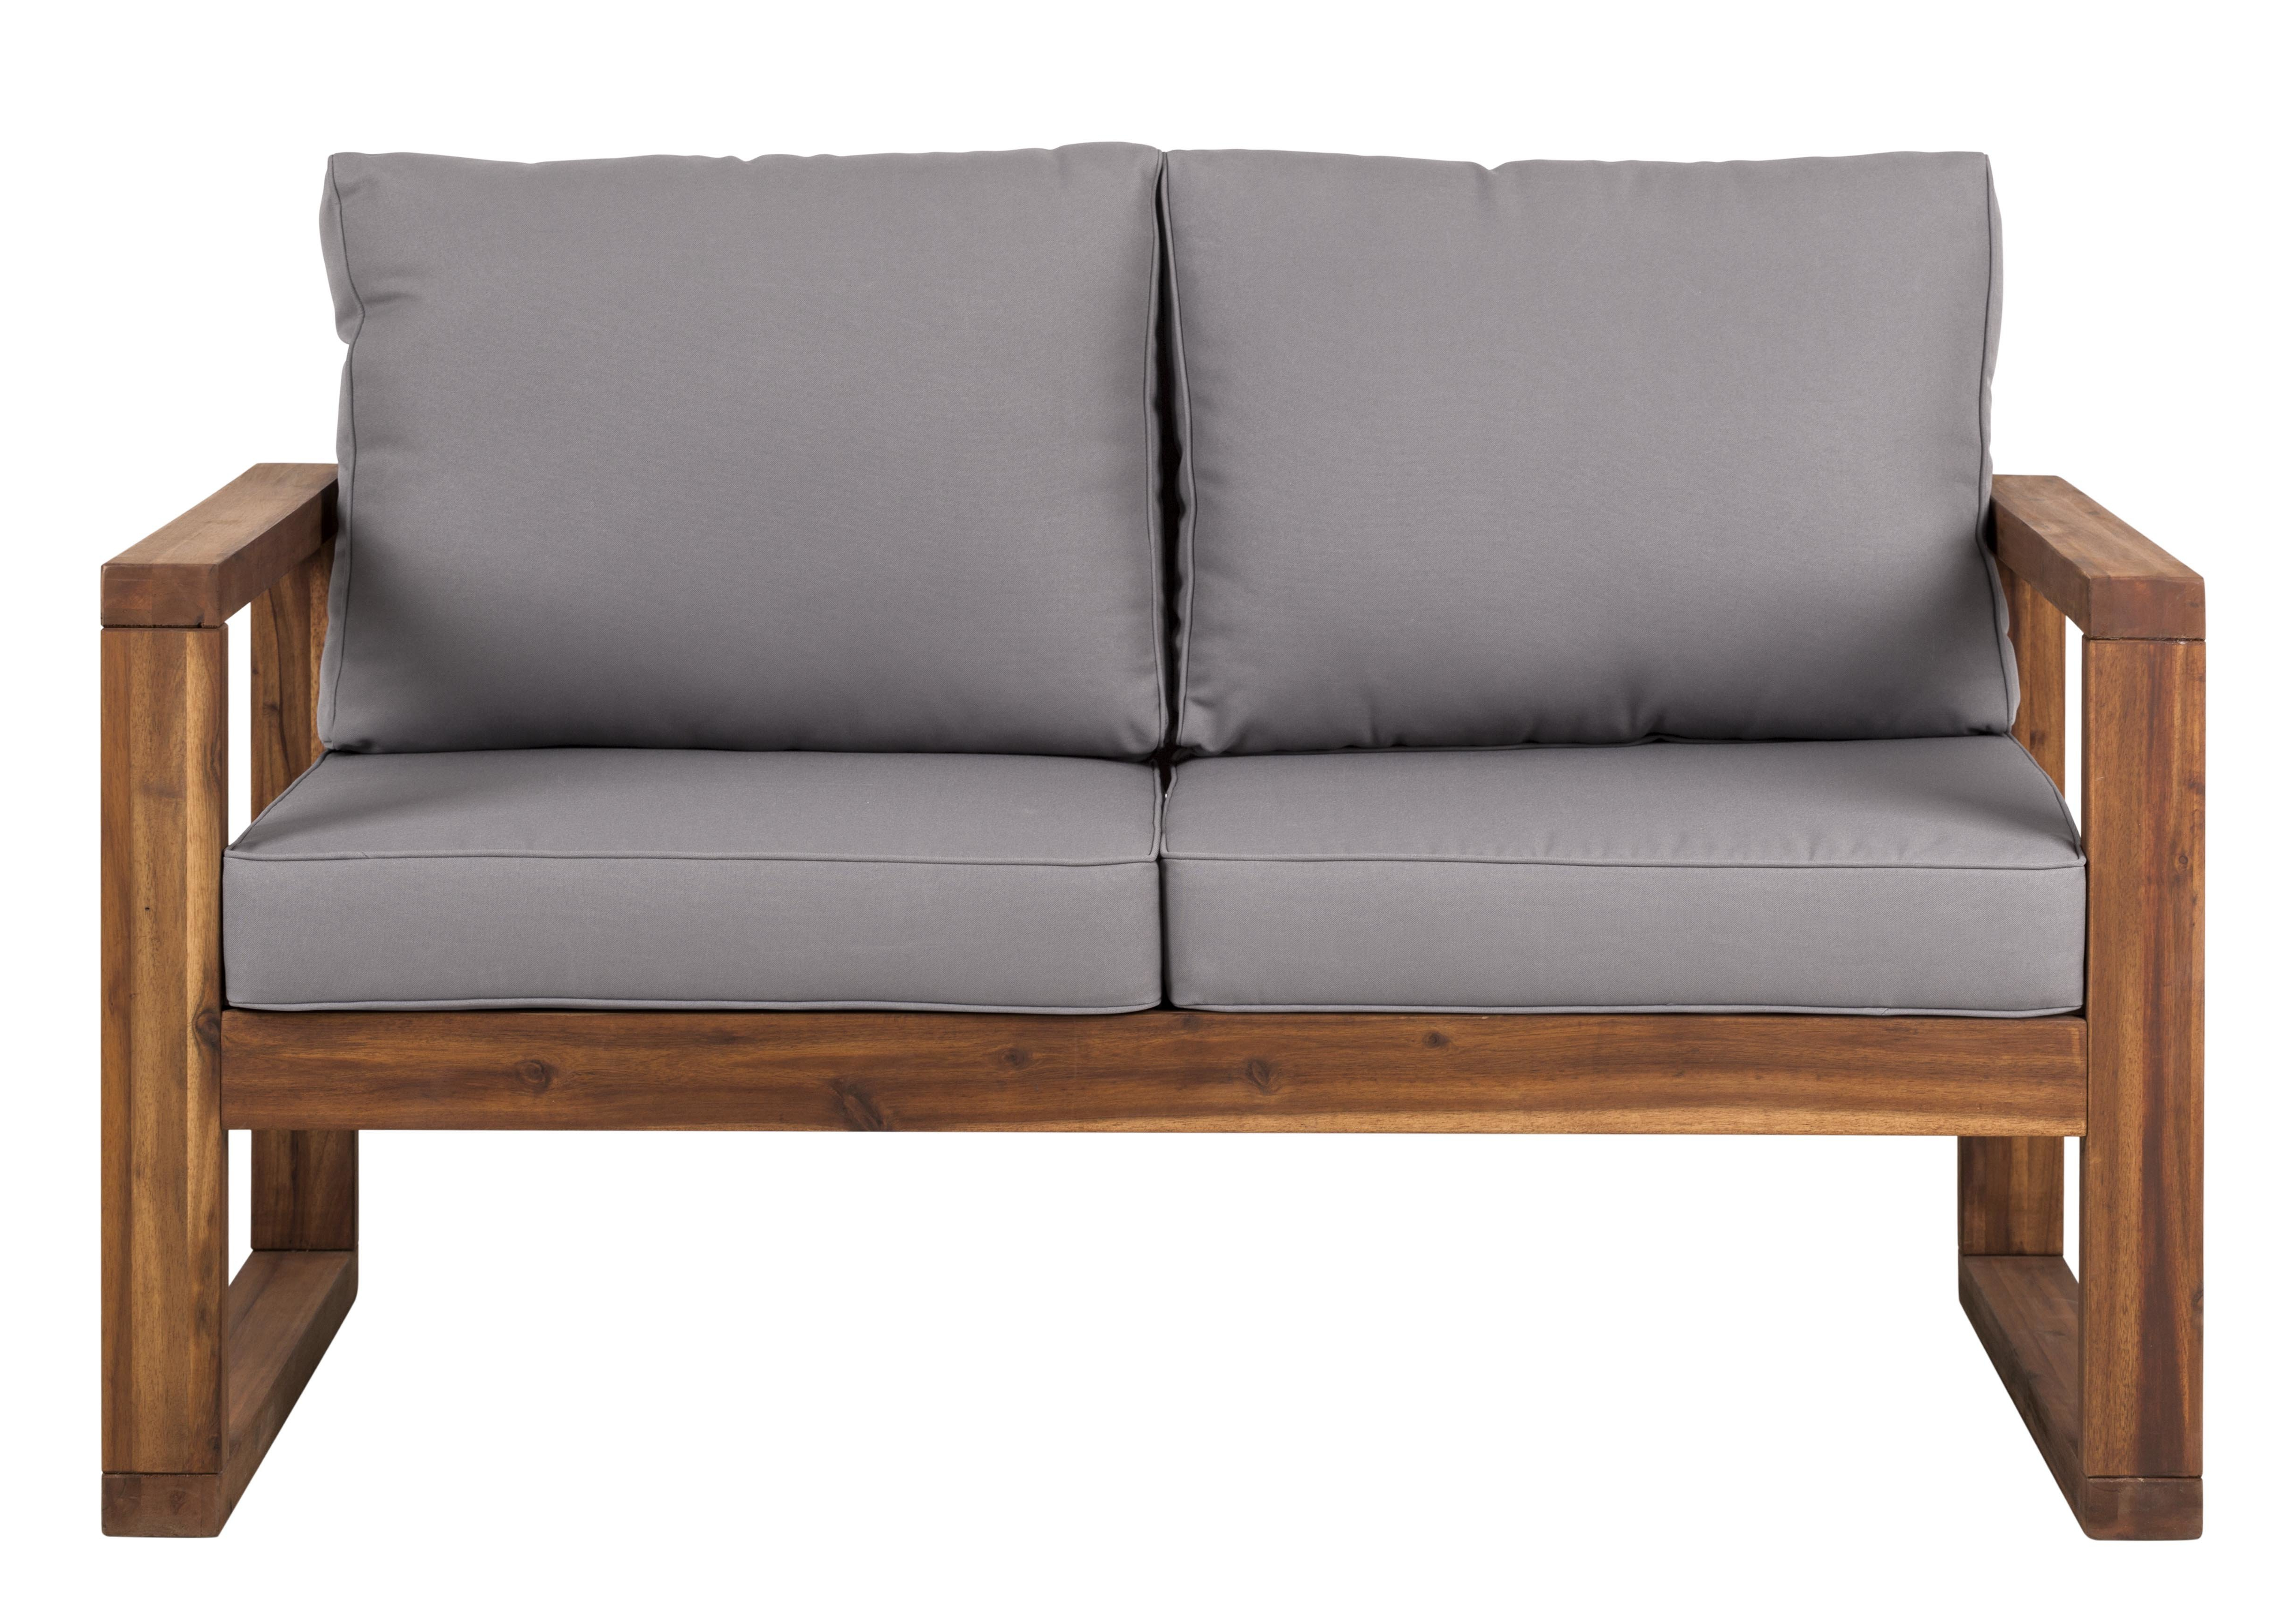 Laverton Loveseats With Cushions Regarding Preferred Lyall Loveseat With Cushion (View 8 of 20)